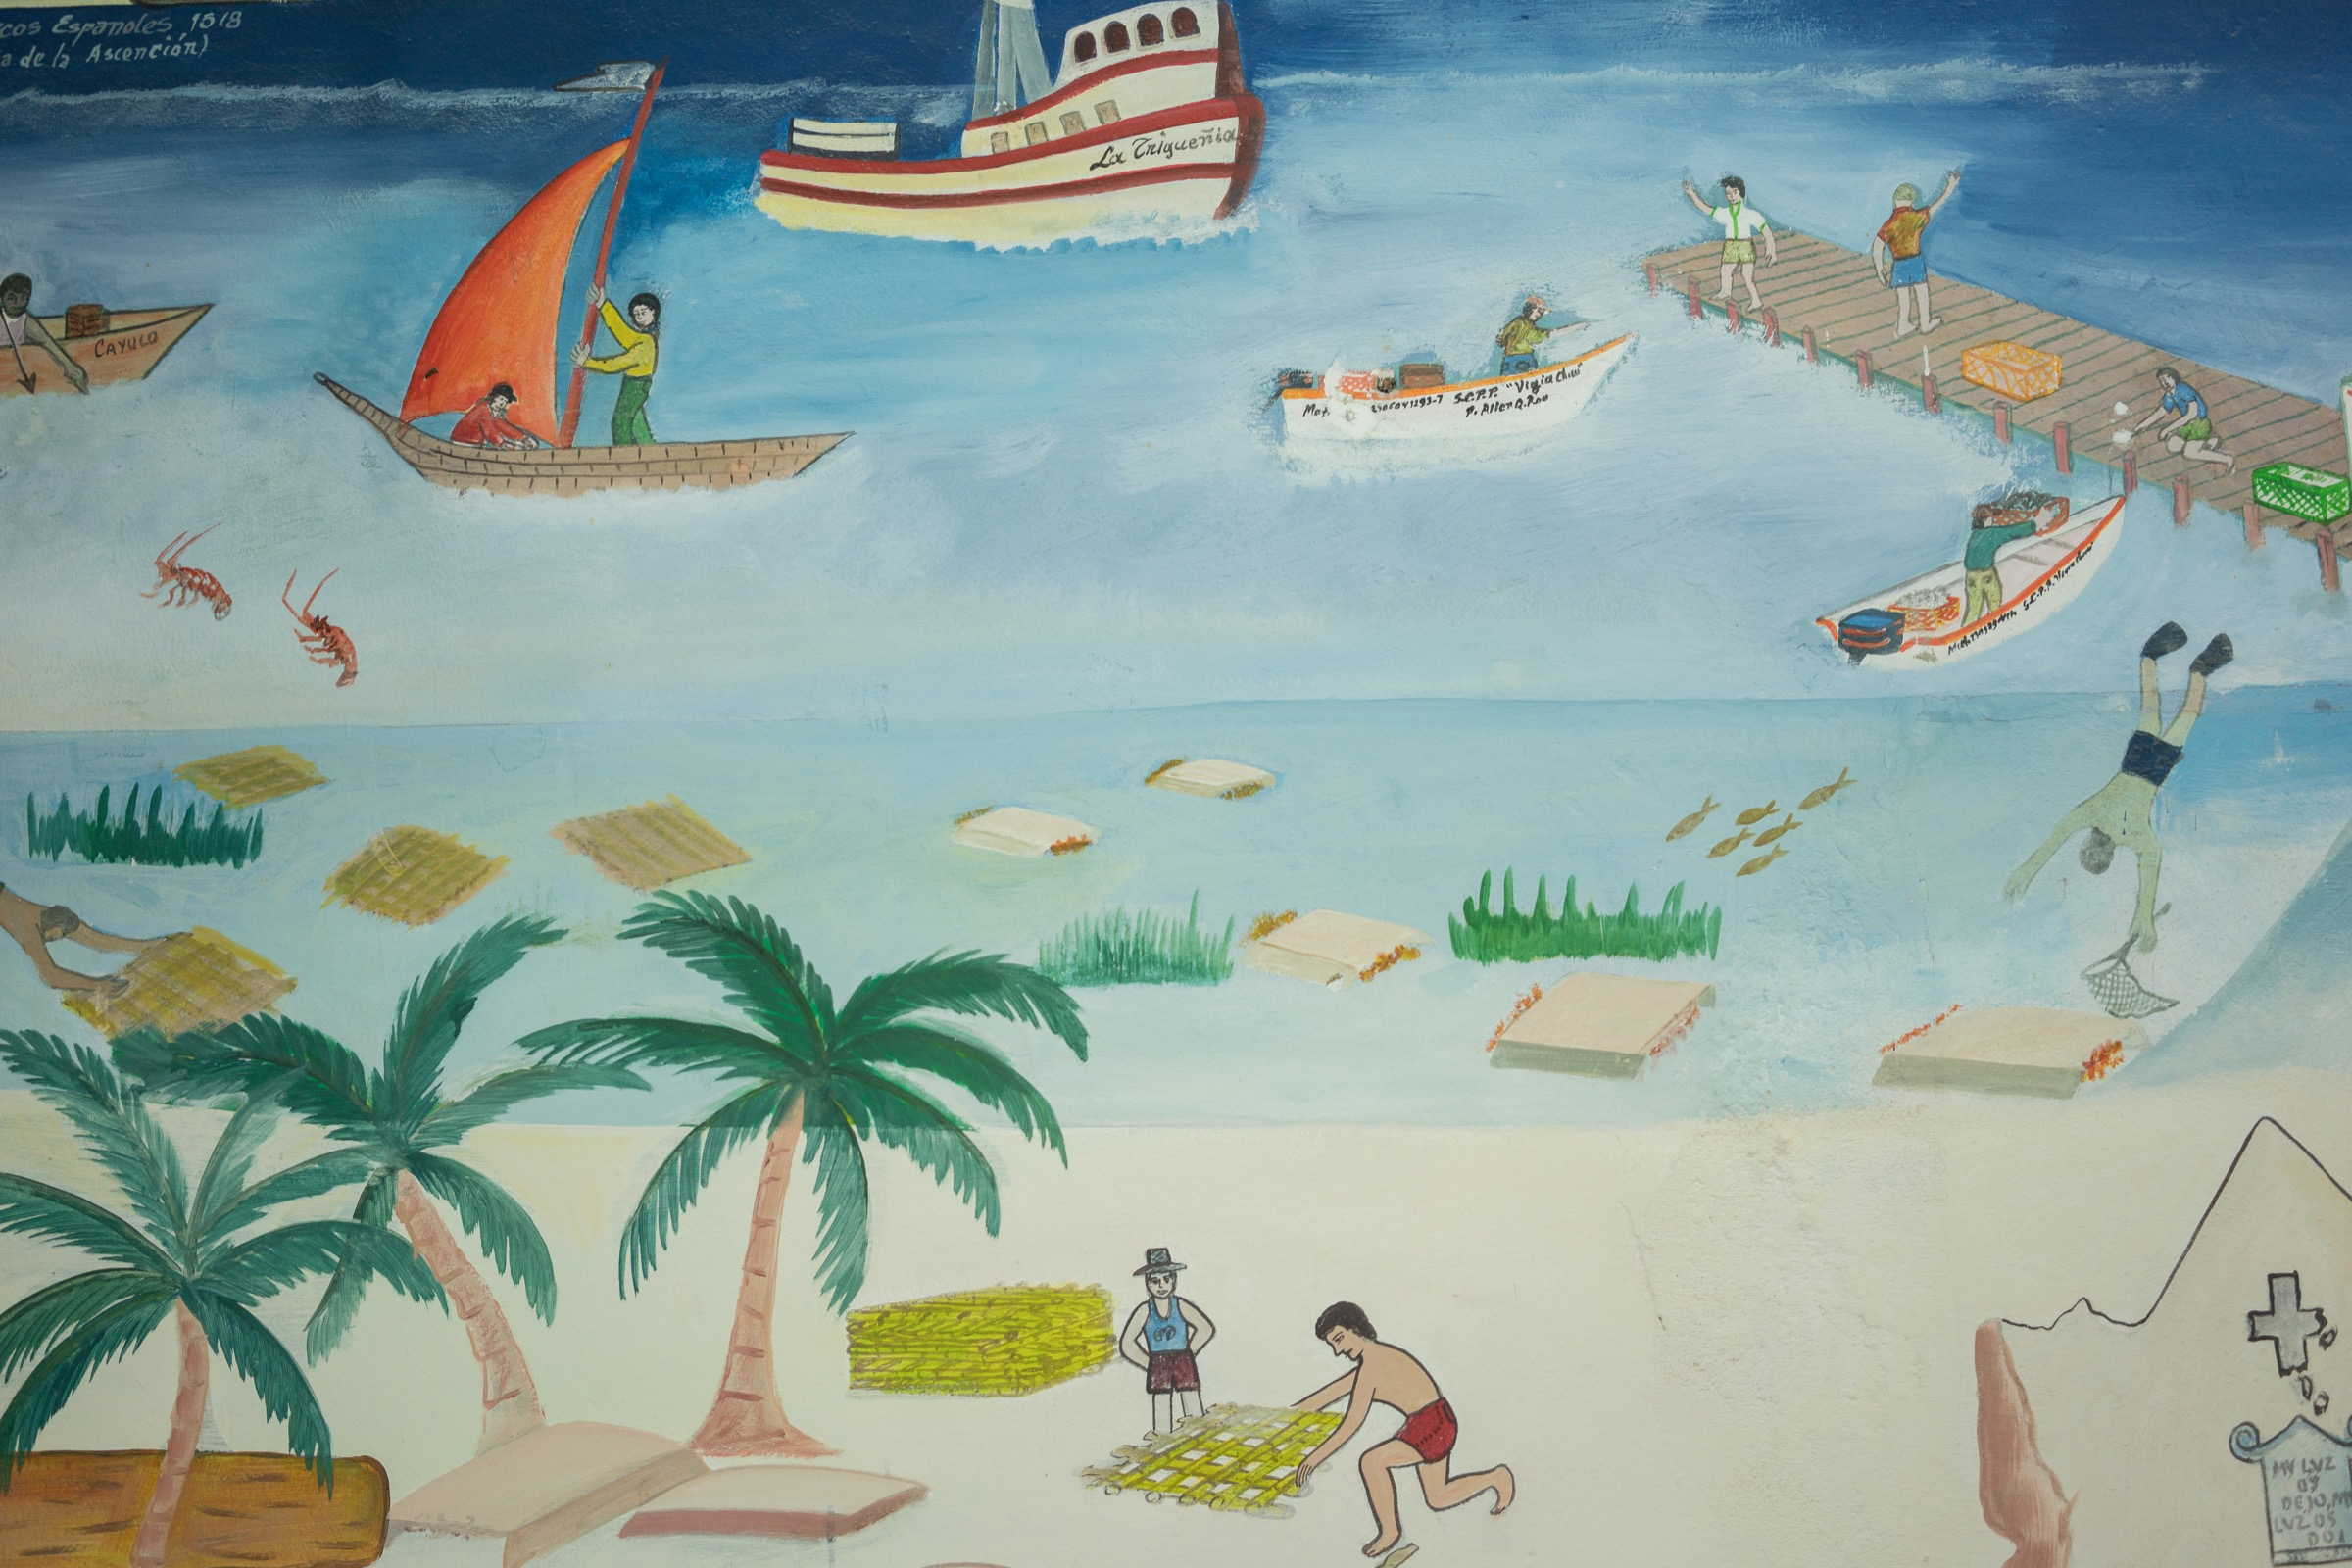 A painting at the offices of La Cooperativa Pesquera de Vigia Chico, a fishing cooperative in Punta Allen, illustrates the importance of lobster fishing to the area and depicts historical versions of lobster traps. Photograph by Dominic Bracco II